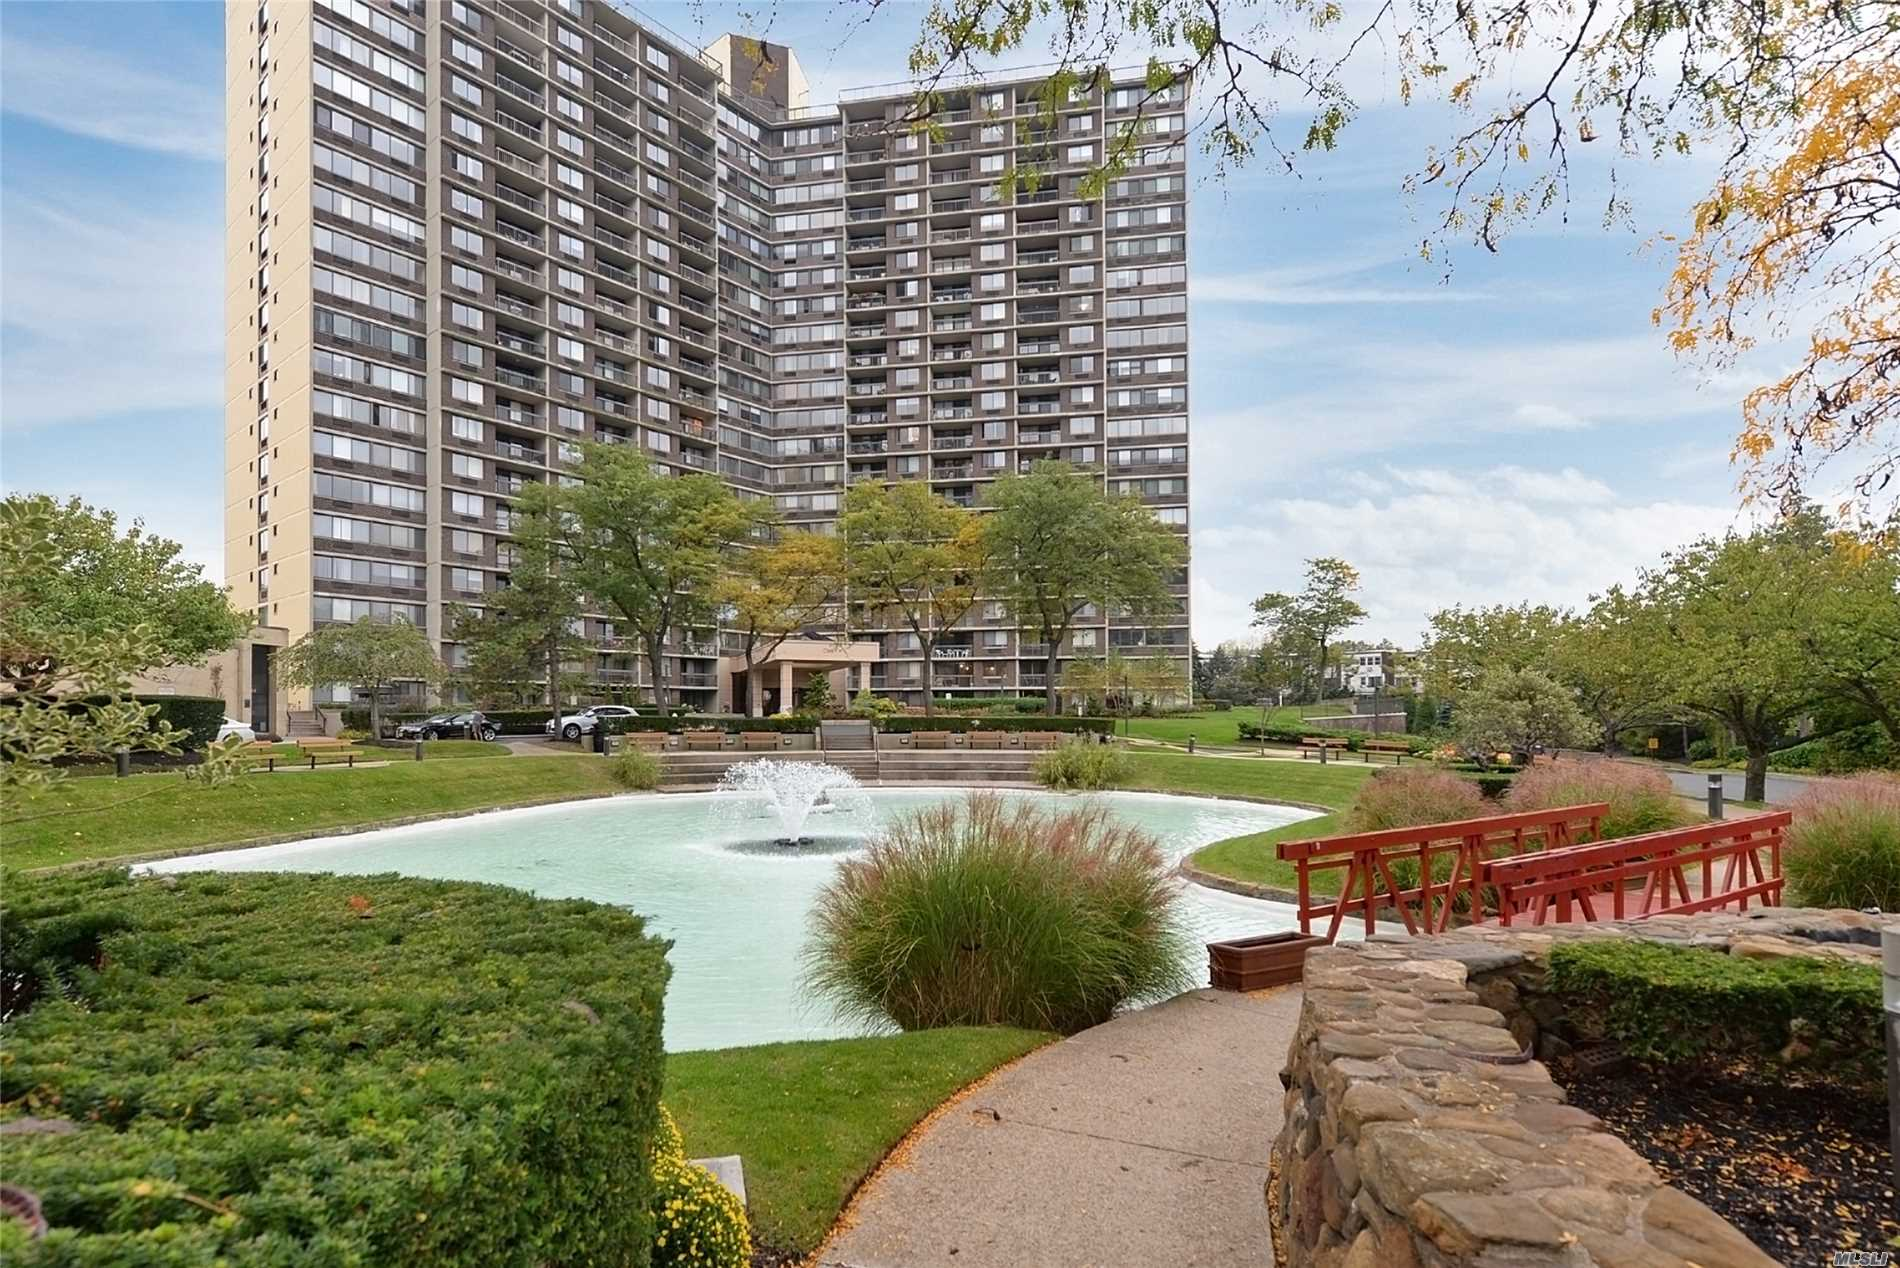 Fabulous Bay Club Gated Community. 24 Hr. Security. Doorman / Concierge. Extra Large Jr.4, 1-2 Bedrooms (Or Den) +Dine Rm Double Terrace, Fully Renovated Kitchen & Bathroom. Beautiful Wood Floors Throughout. Nyc Skyline & Partial Bridge Views.Year Round Swim & Fitness Center & Indoor Parking (Extra Fees). Free Tennis Club. Underground Stores. On Premises Restaurant. New Children's Playground. Best Location ... Near Everything